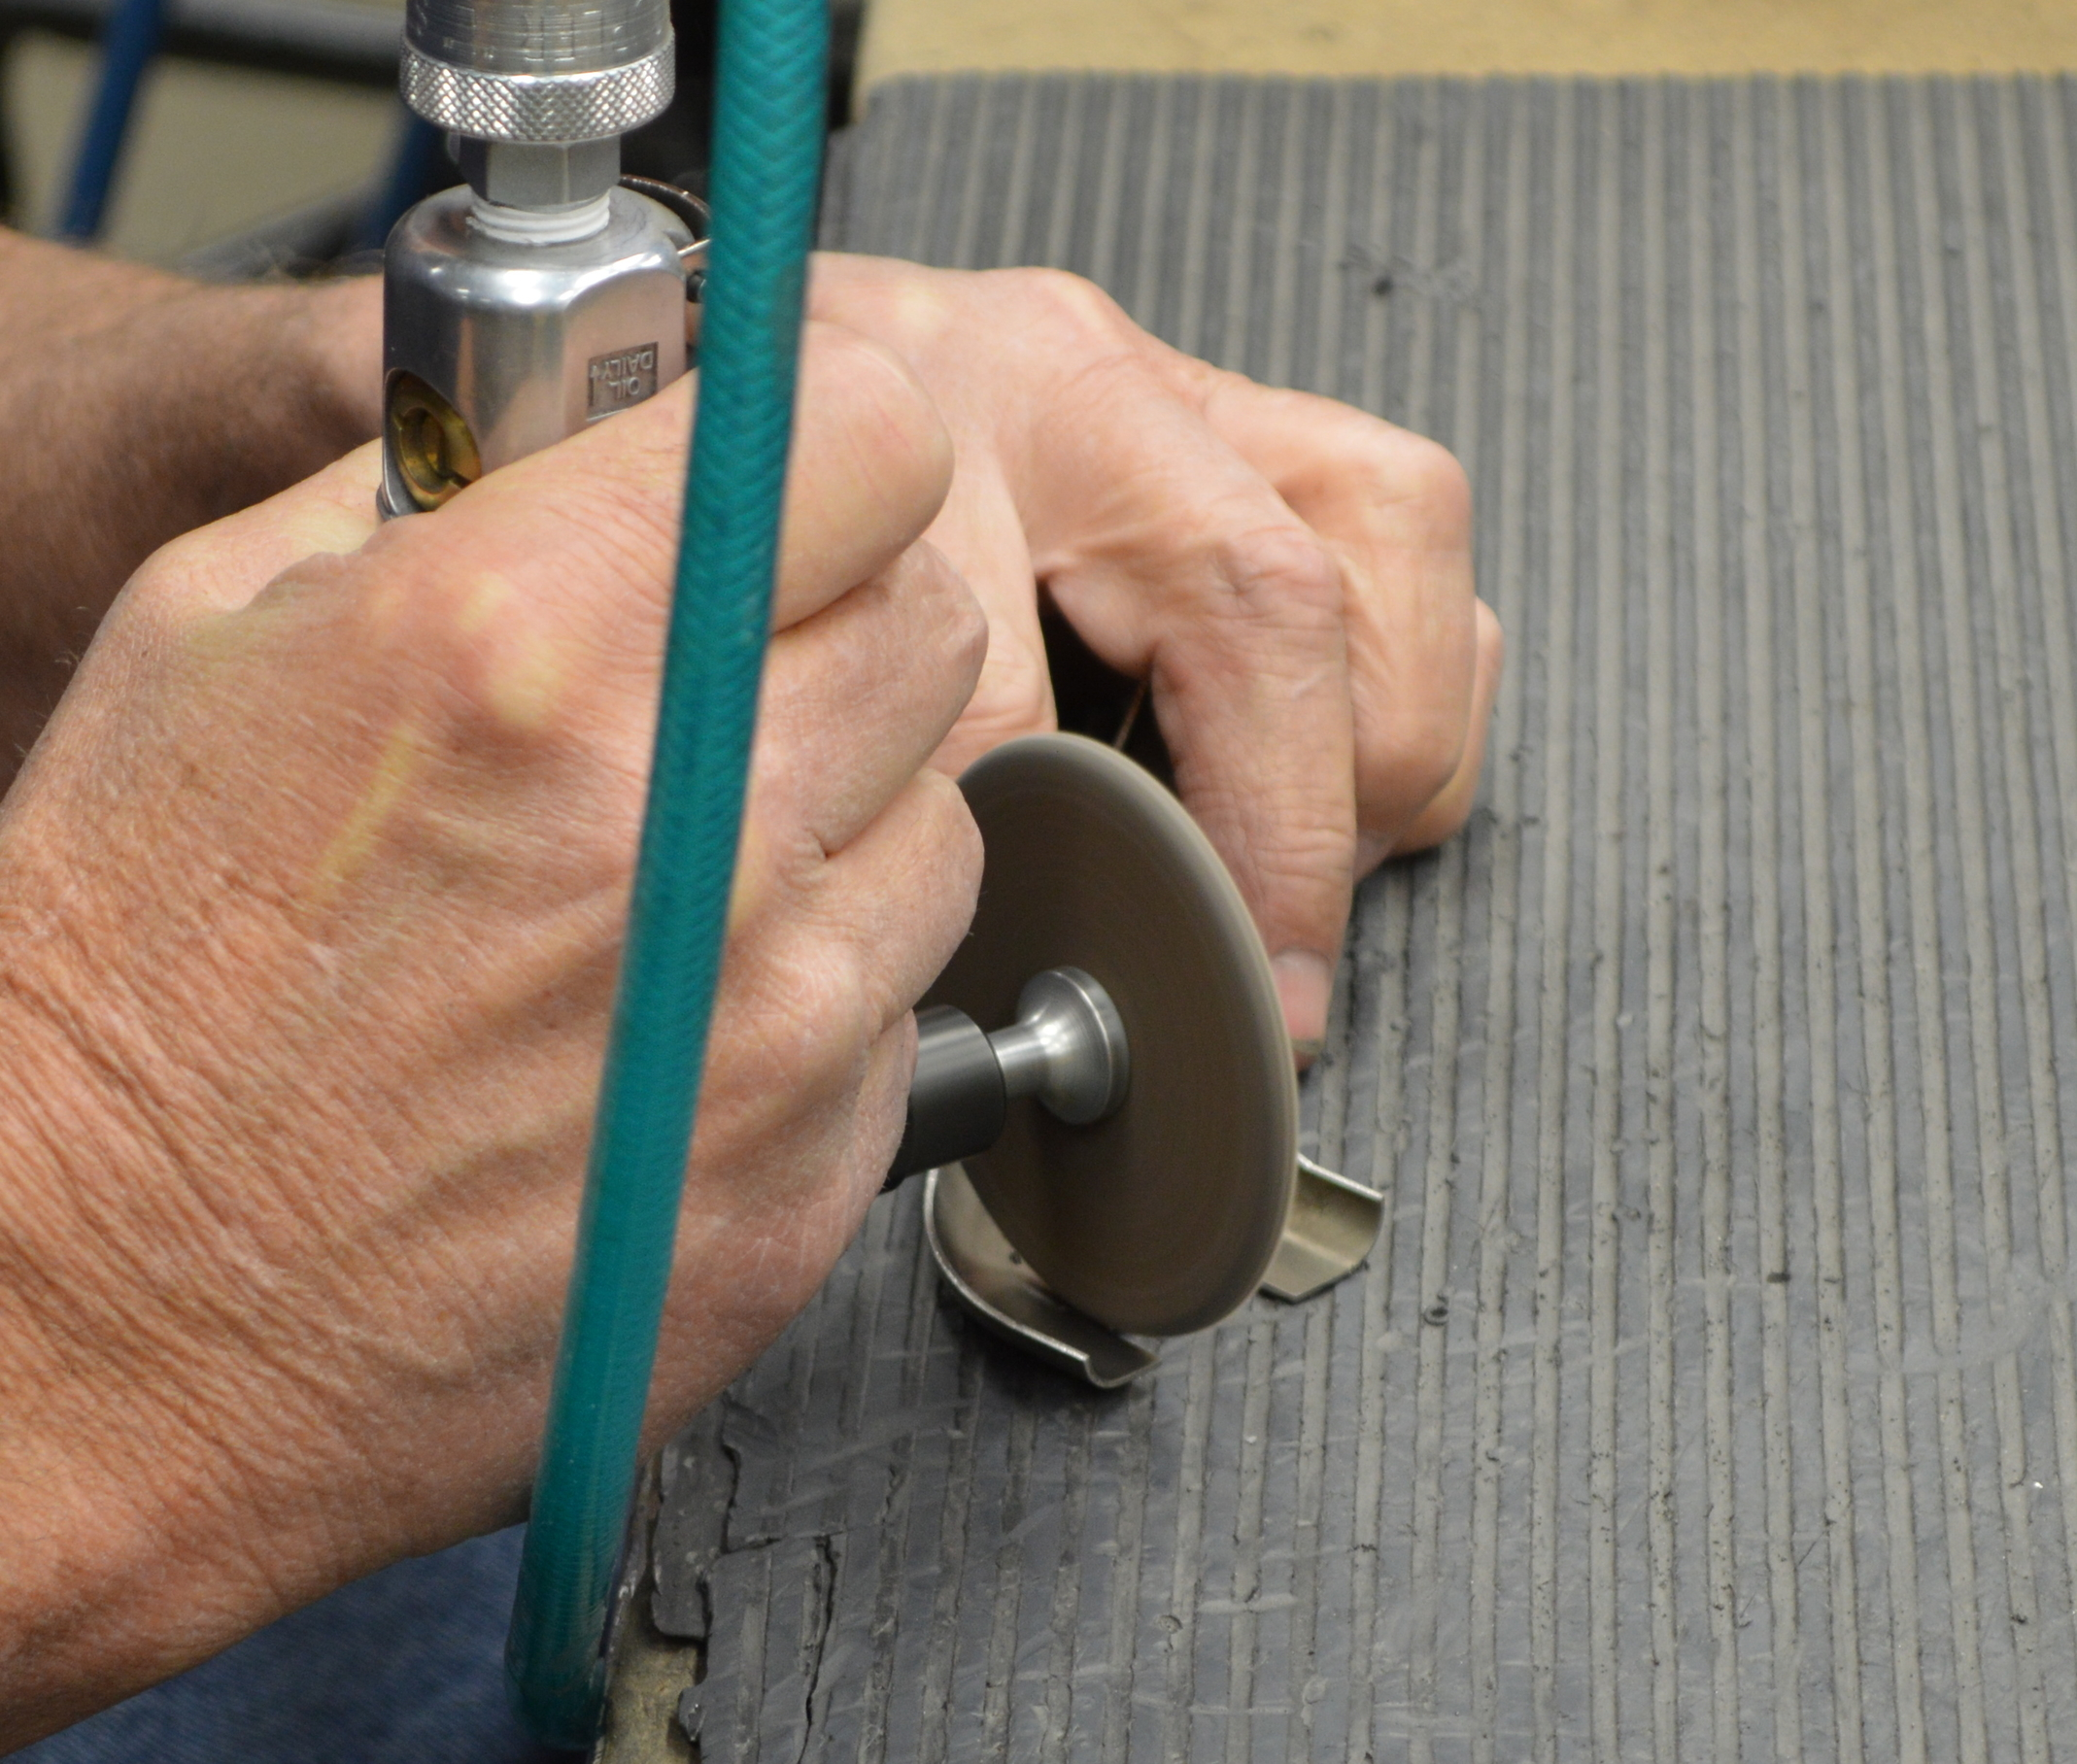 associated manual operations danville metal skill workmanship and personal attention to detail will never be outdated at danville metal